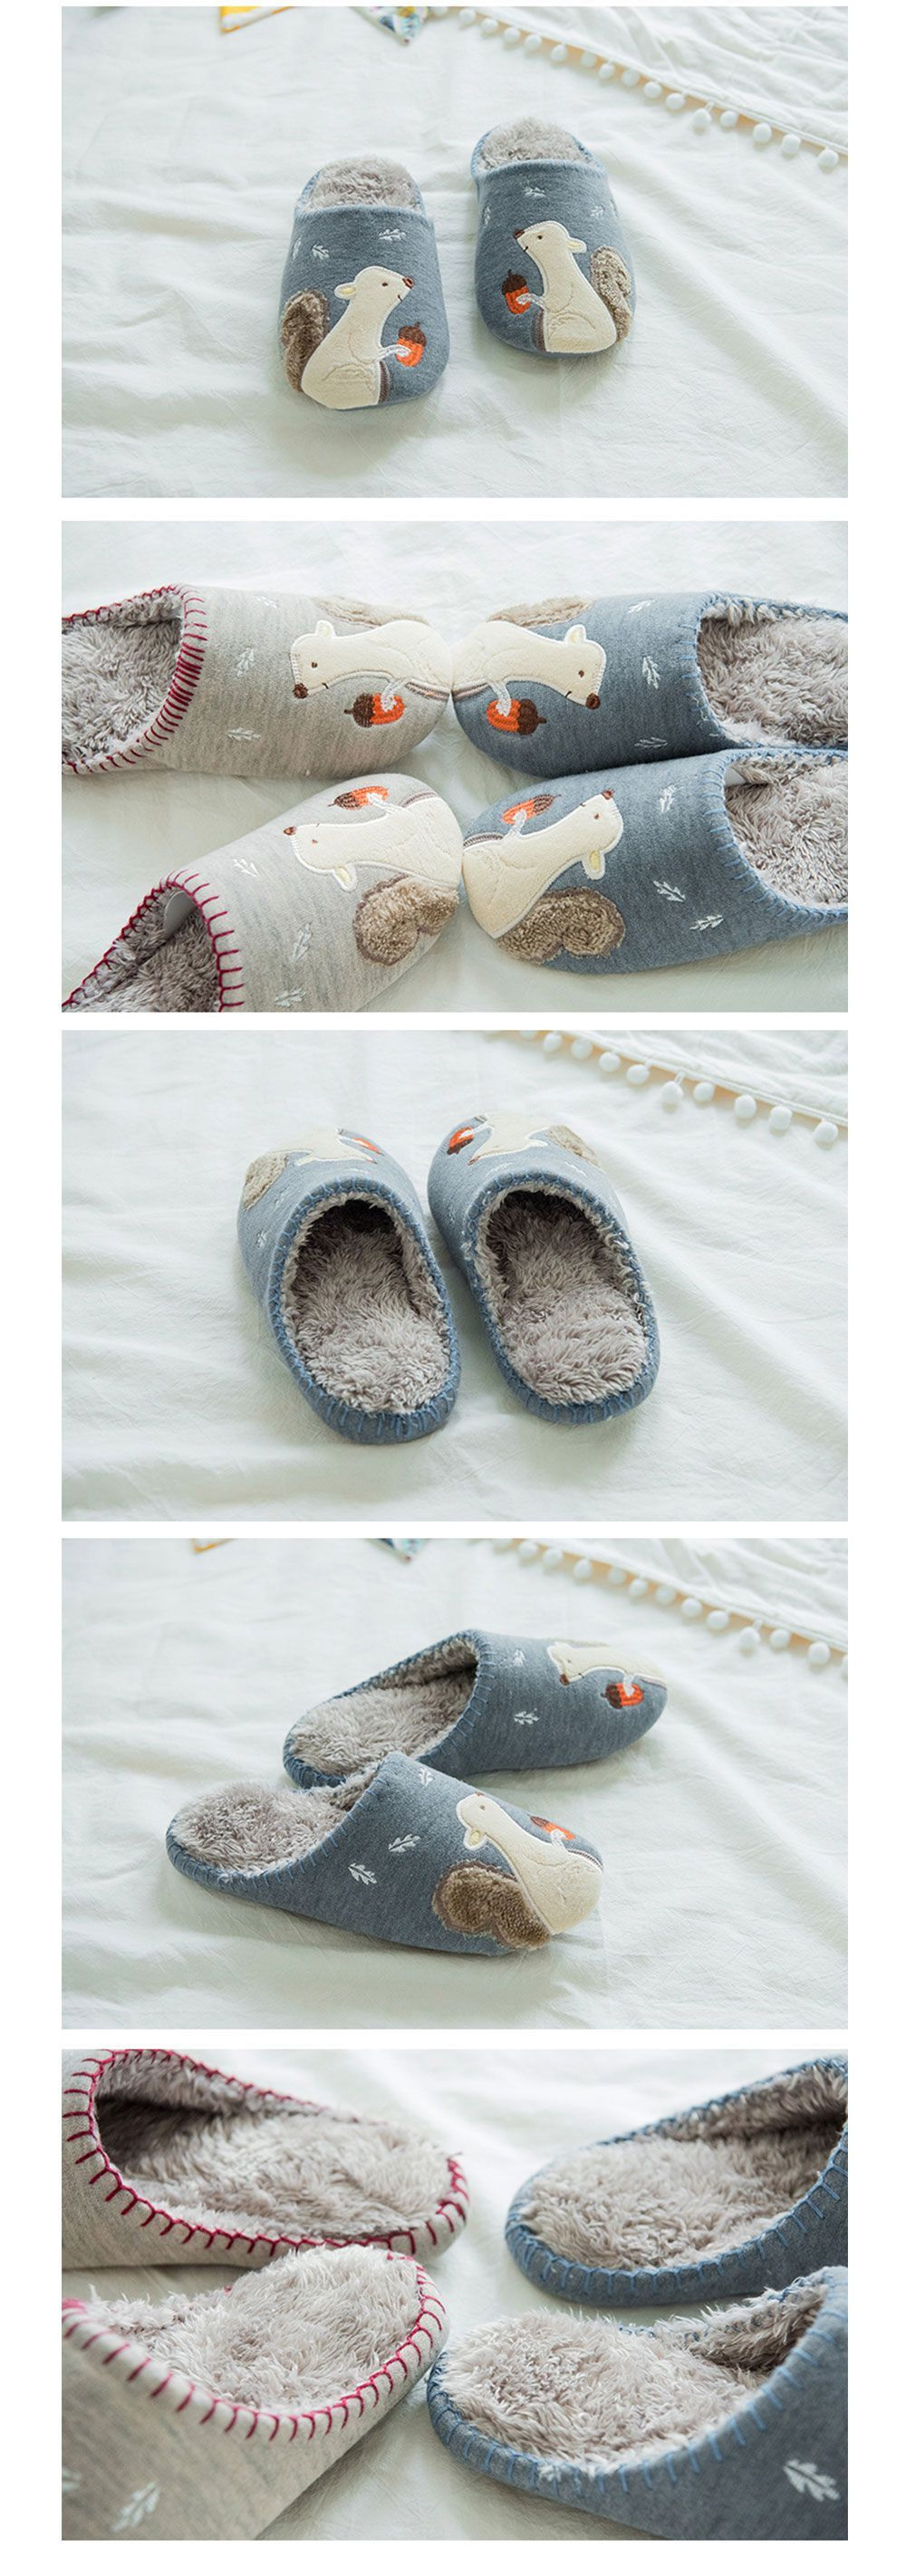 Squirrel Slippers Warm & Cozy